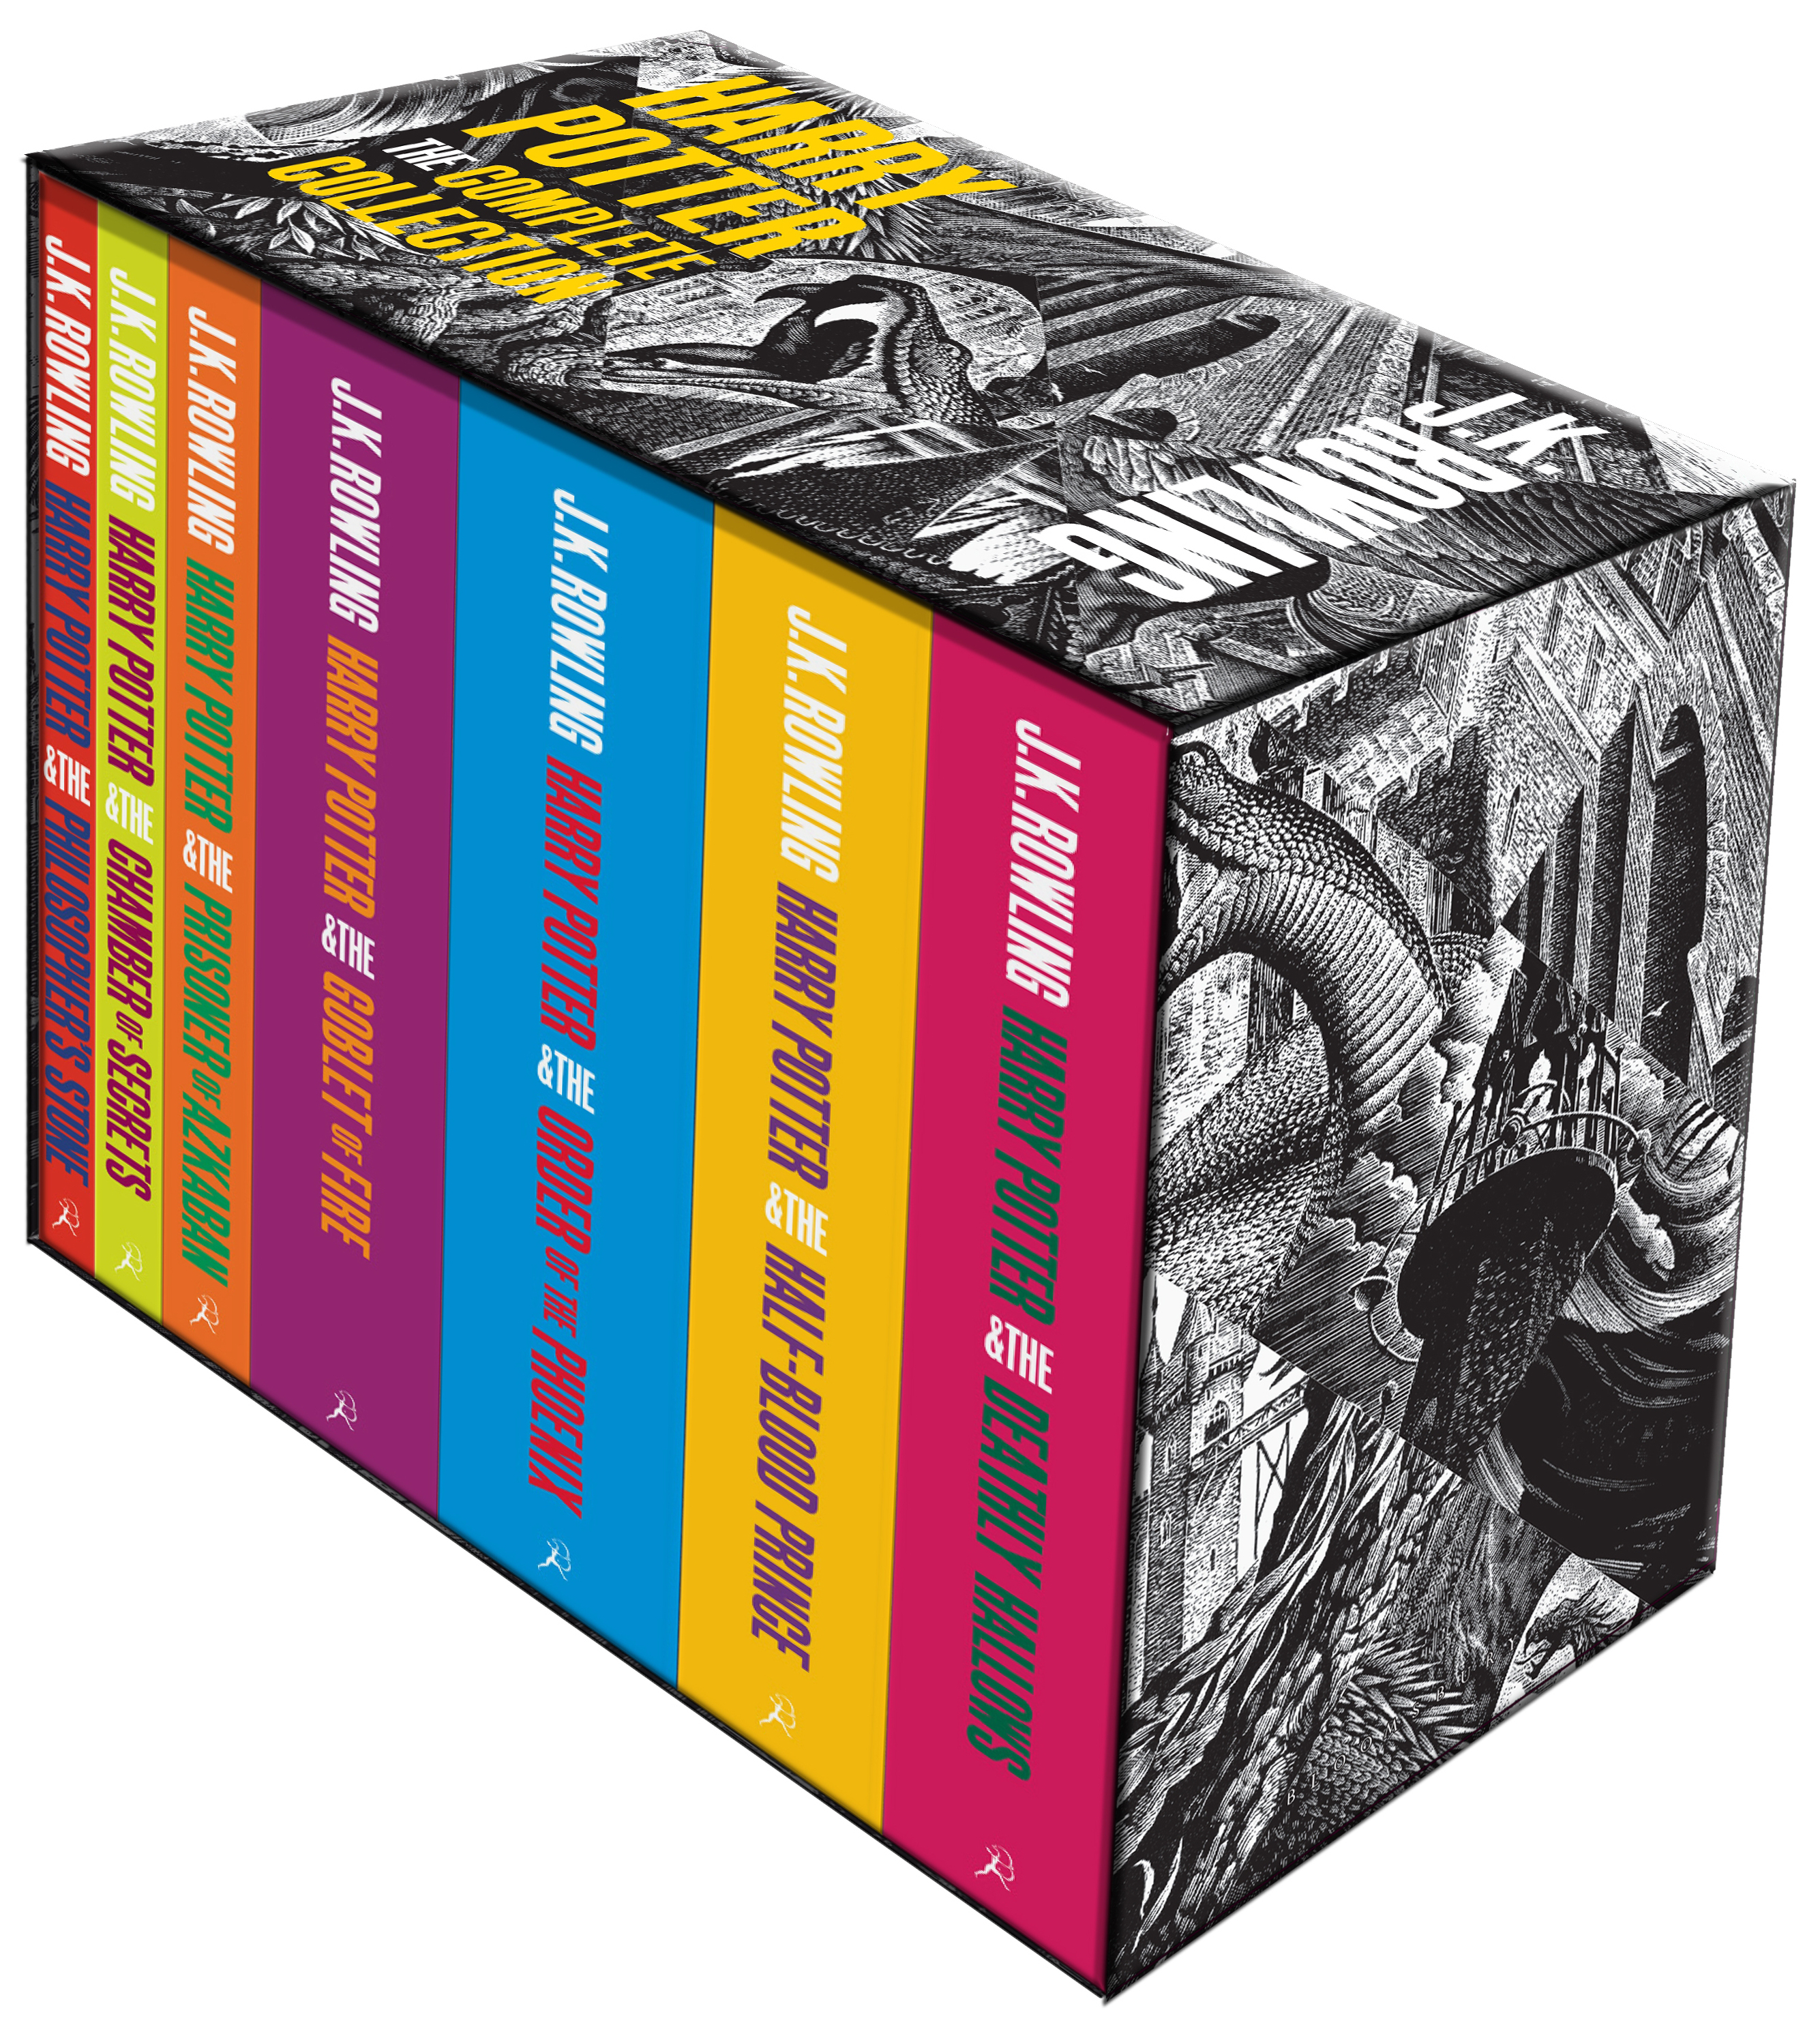 Harry Potter Complete Paperback Box Set Adult Editions by J.K. Rowling, ISBN: 9781408850756